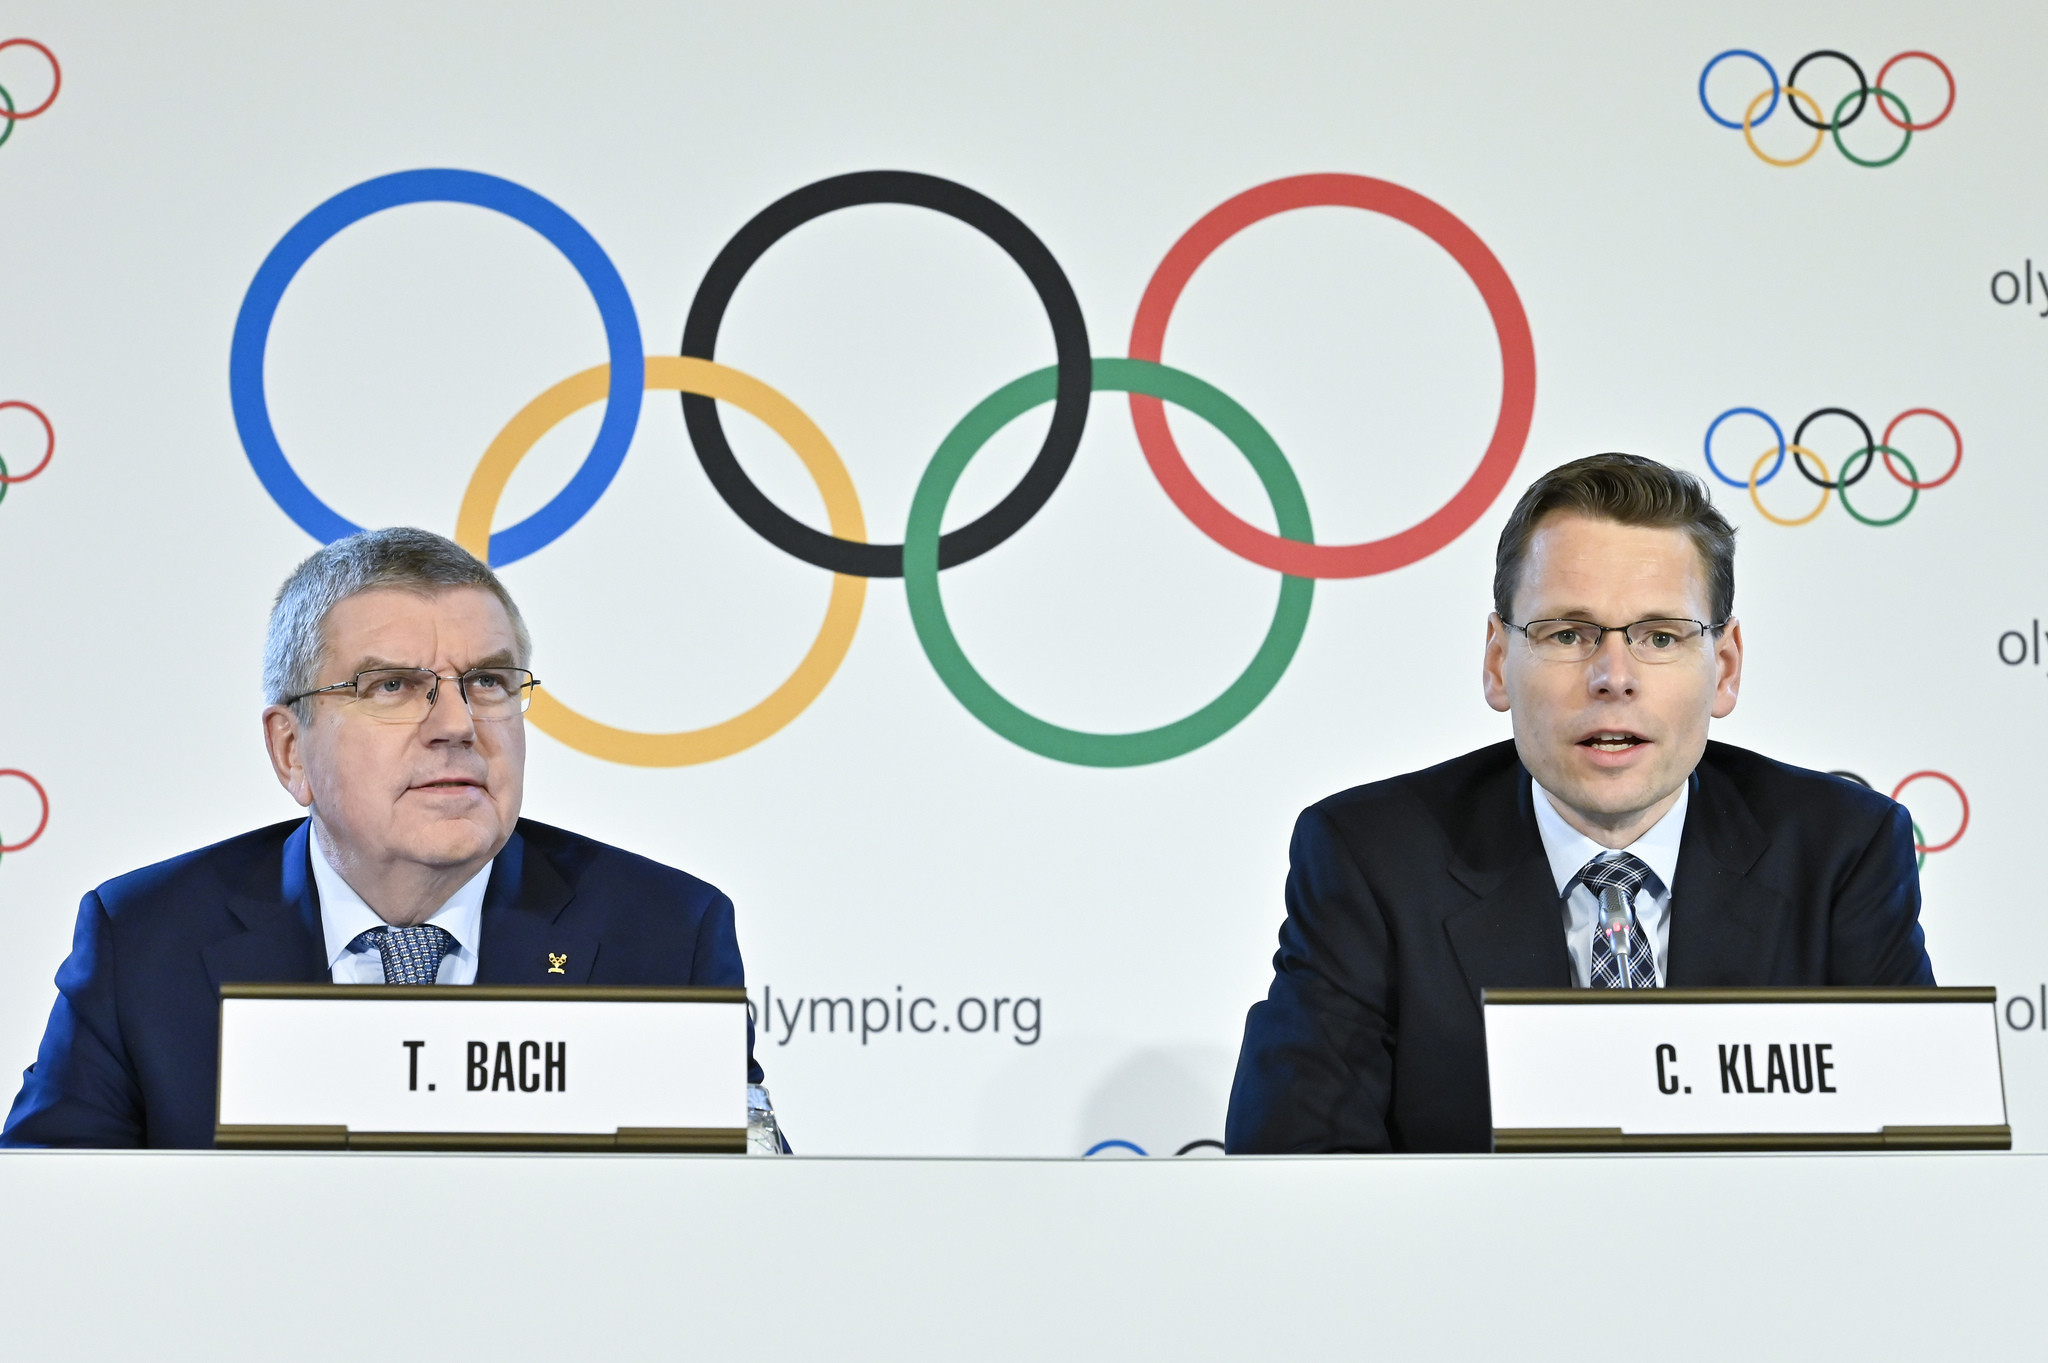 Korea discussions for Tokyo 2020 will not be affected by political situation claims Bach